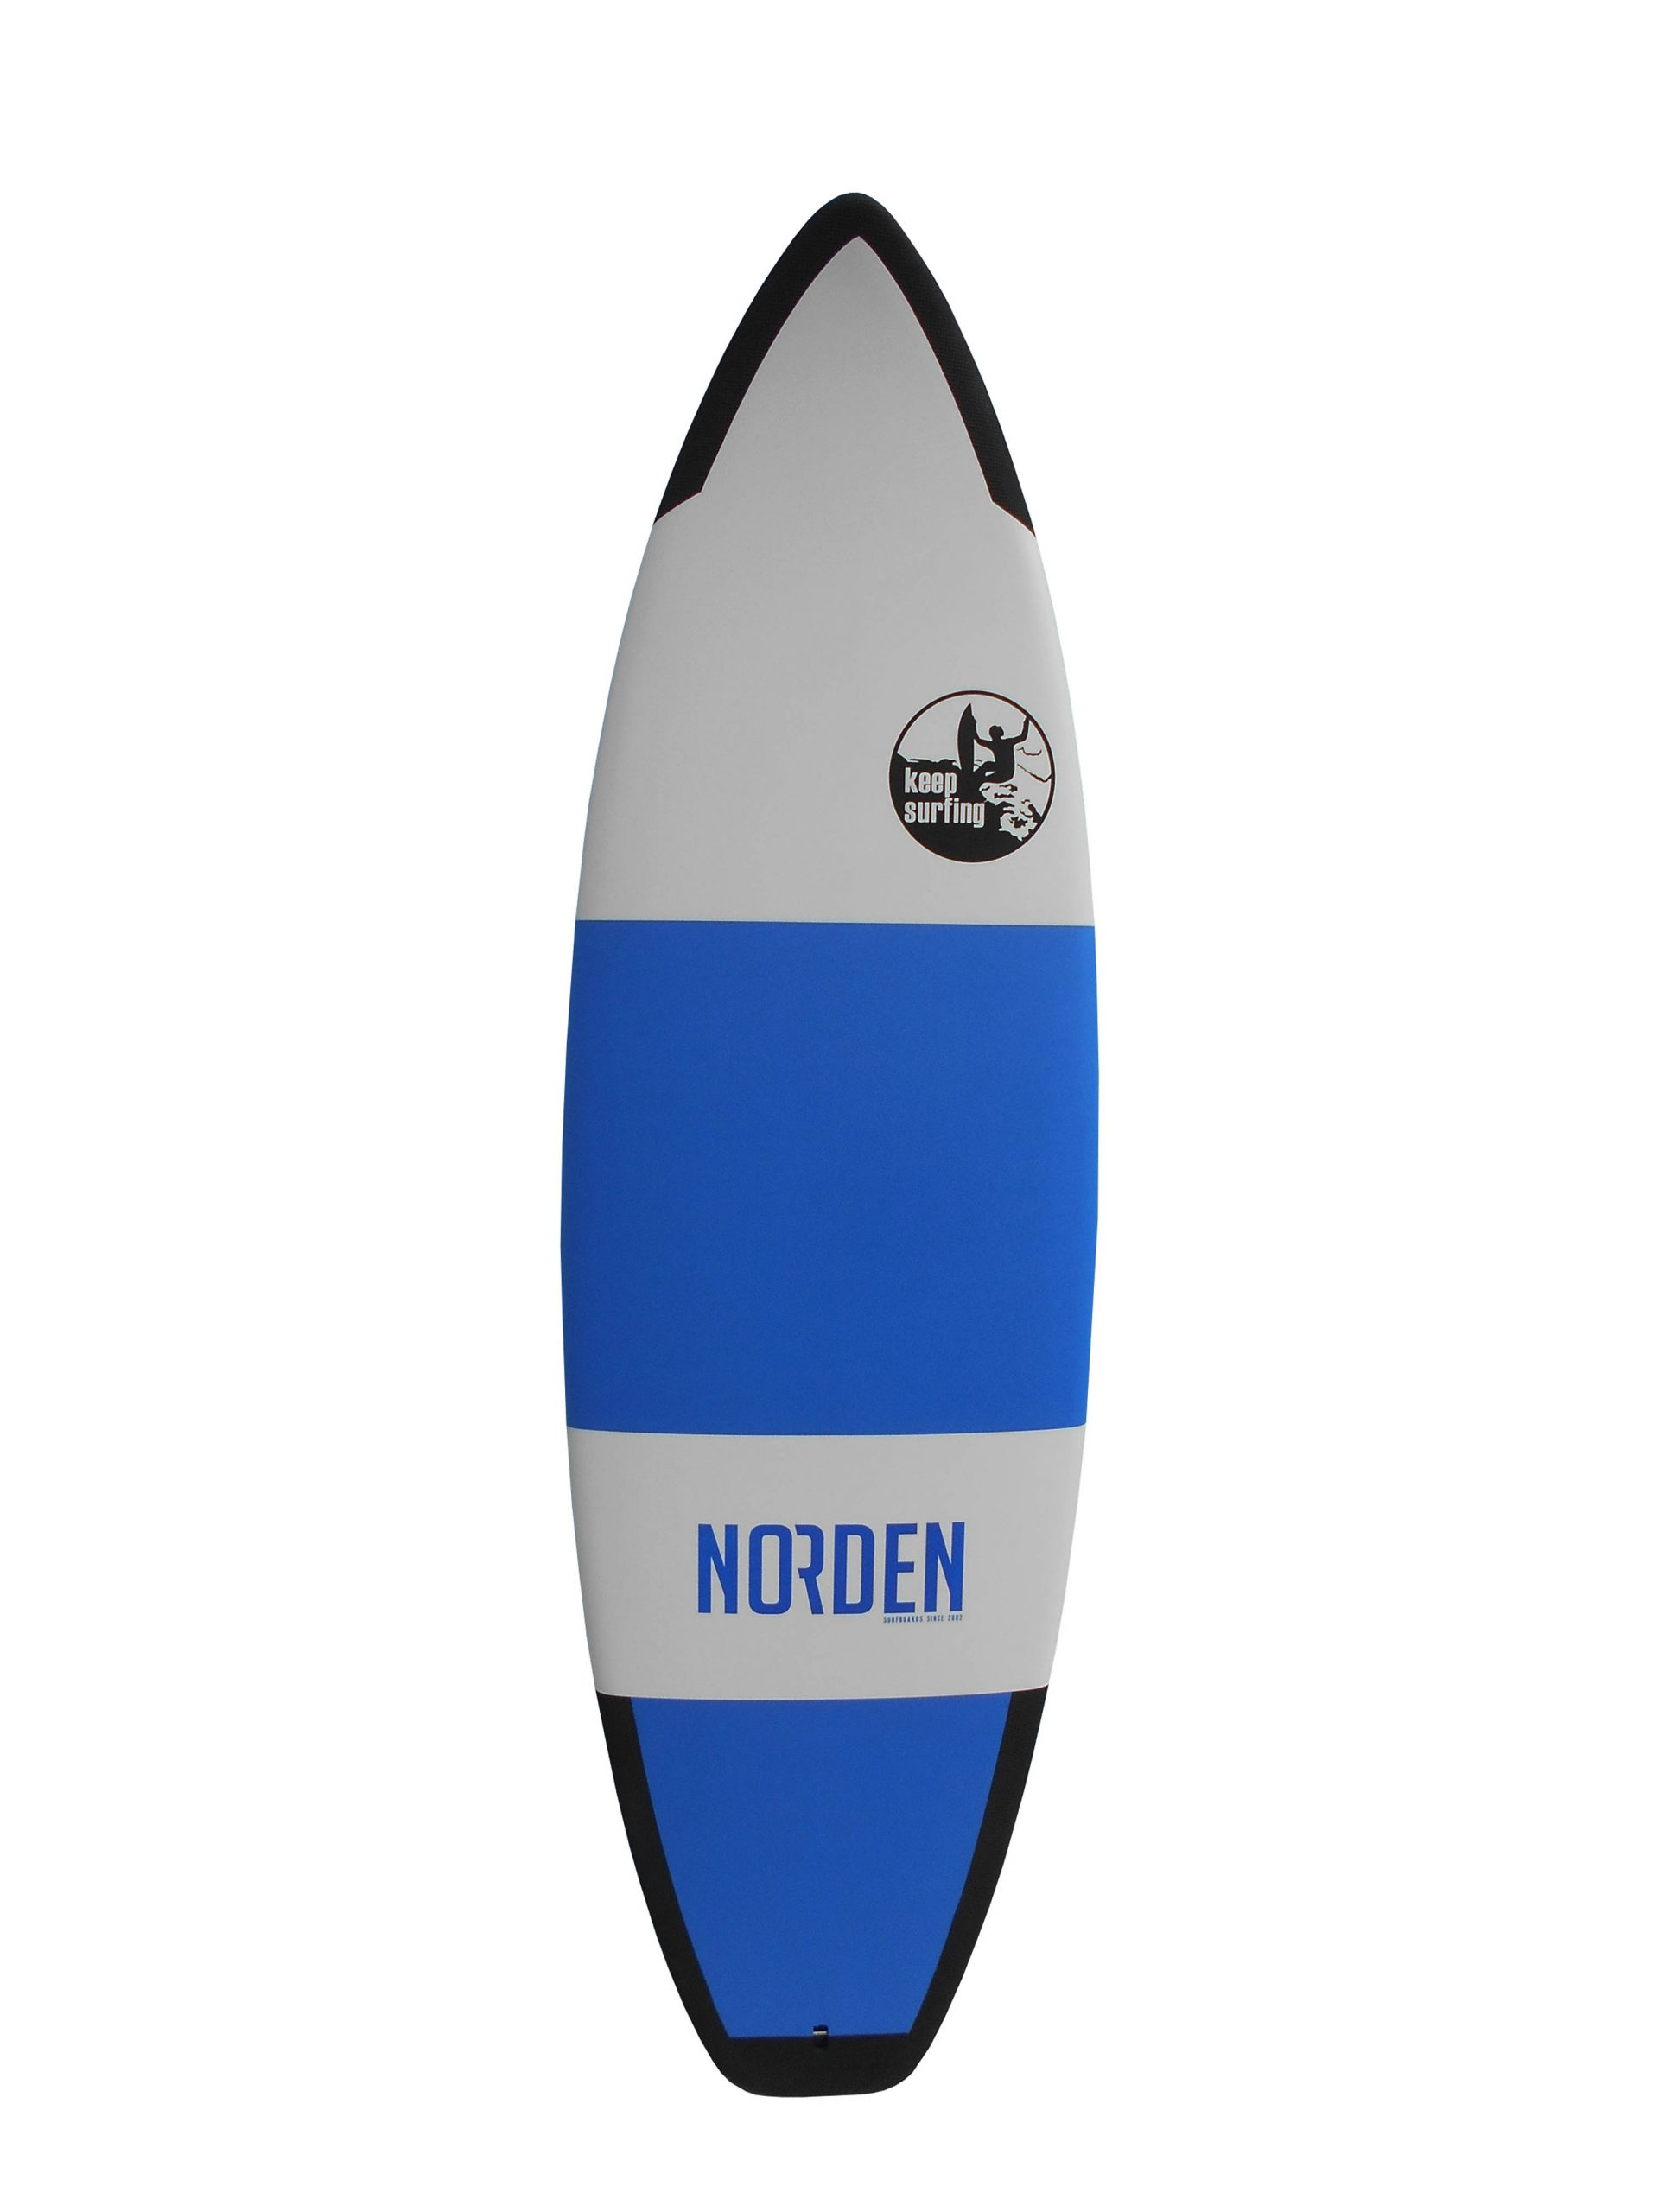 Norden SS21 Surboards